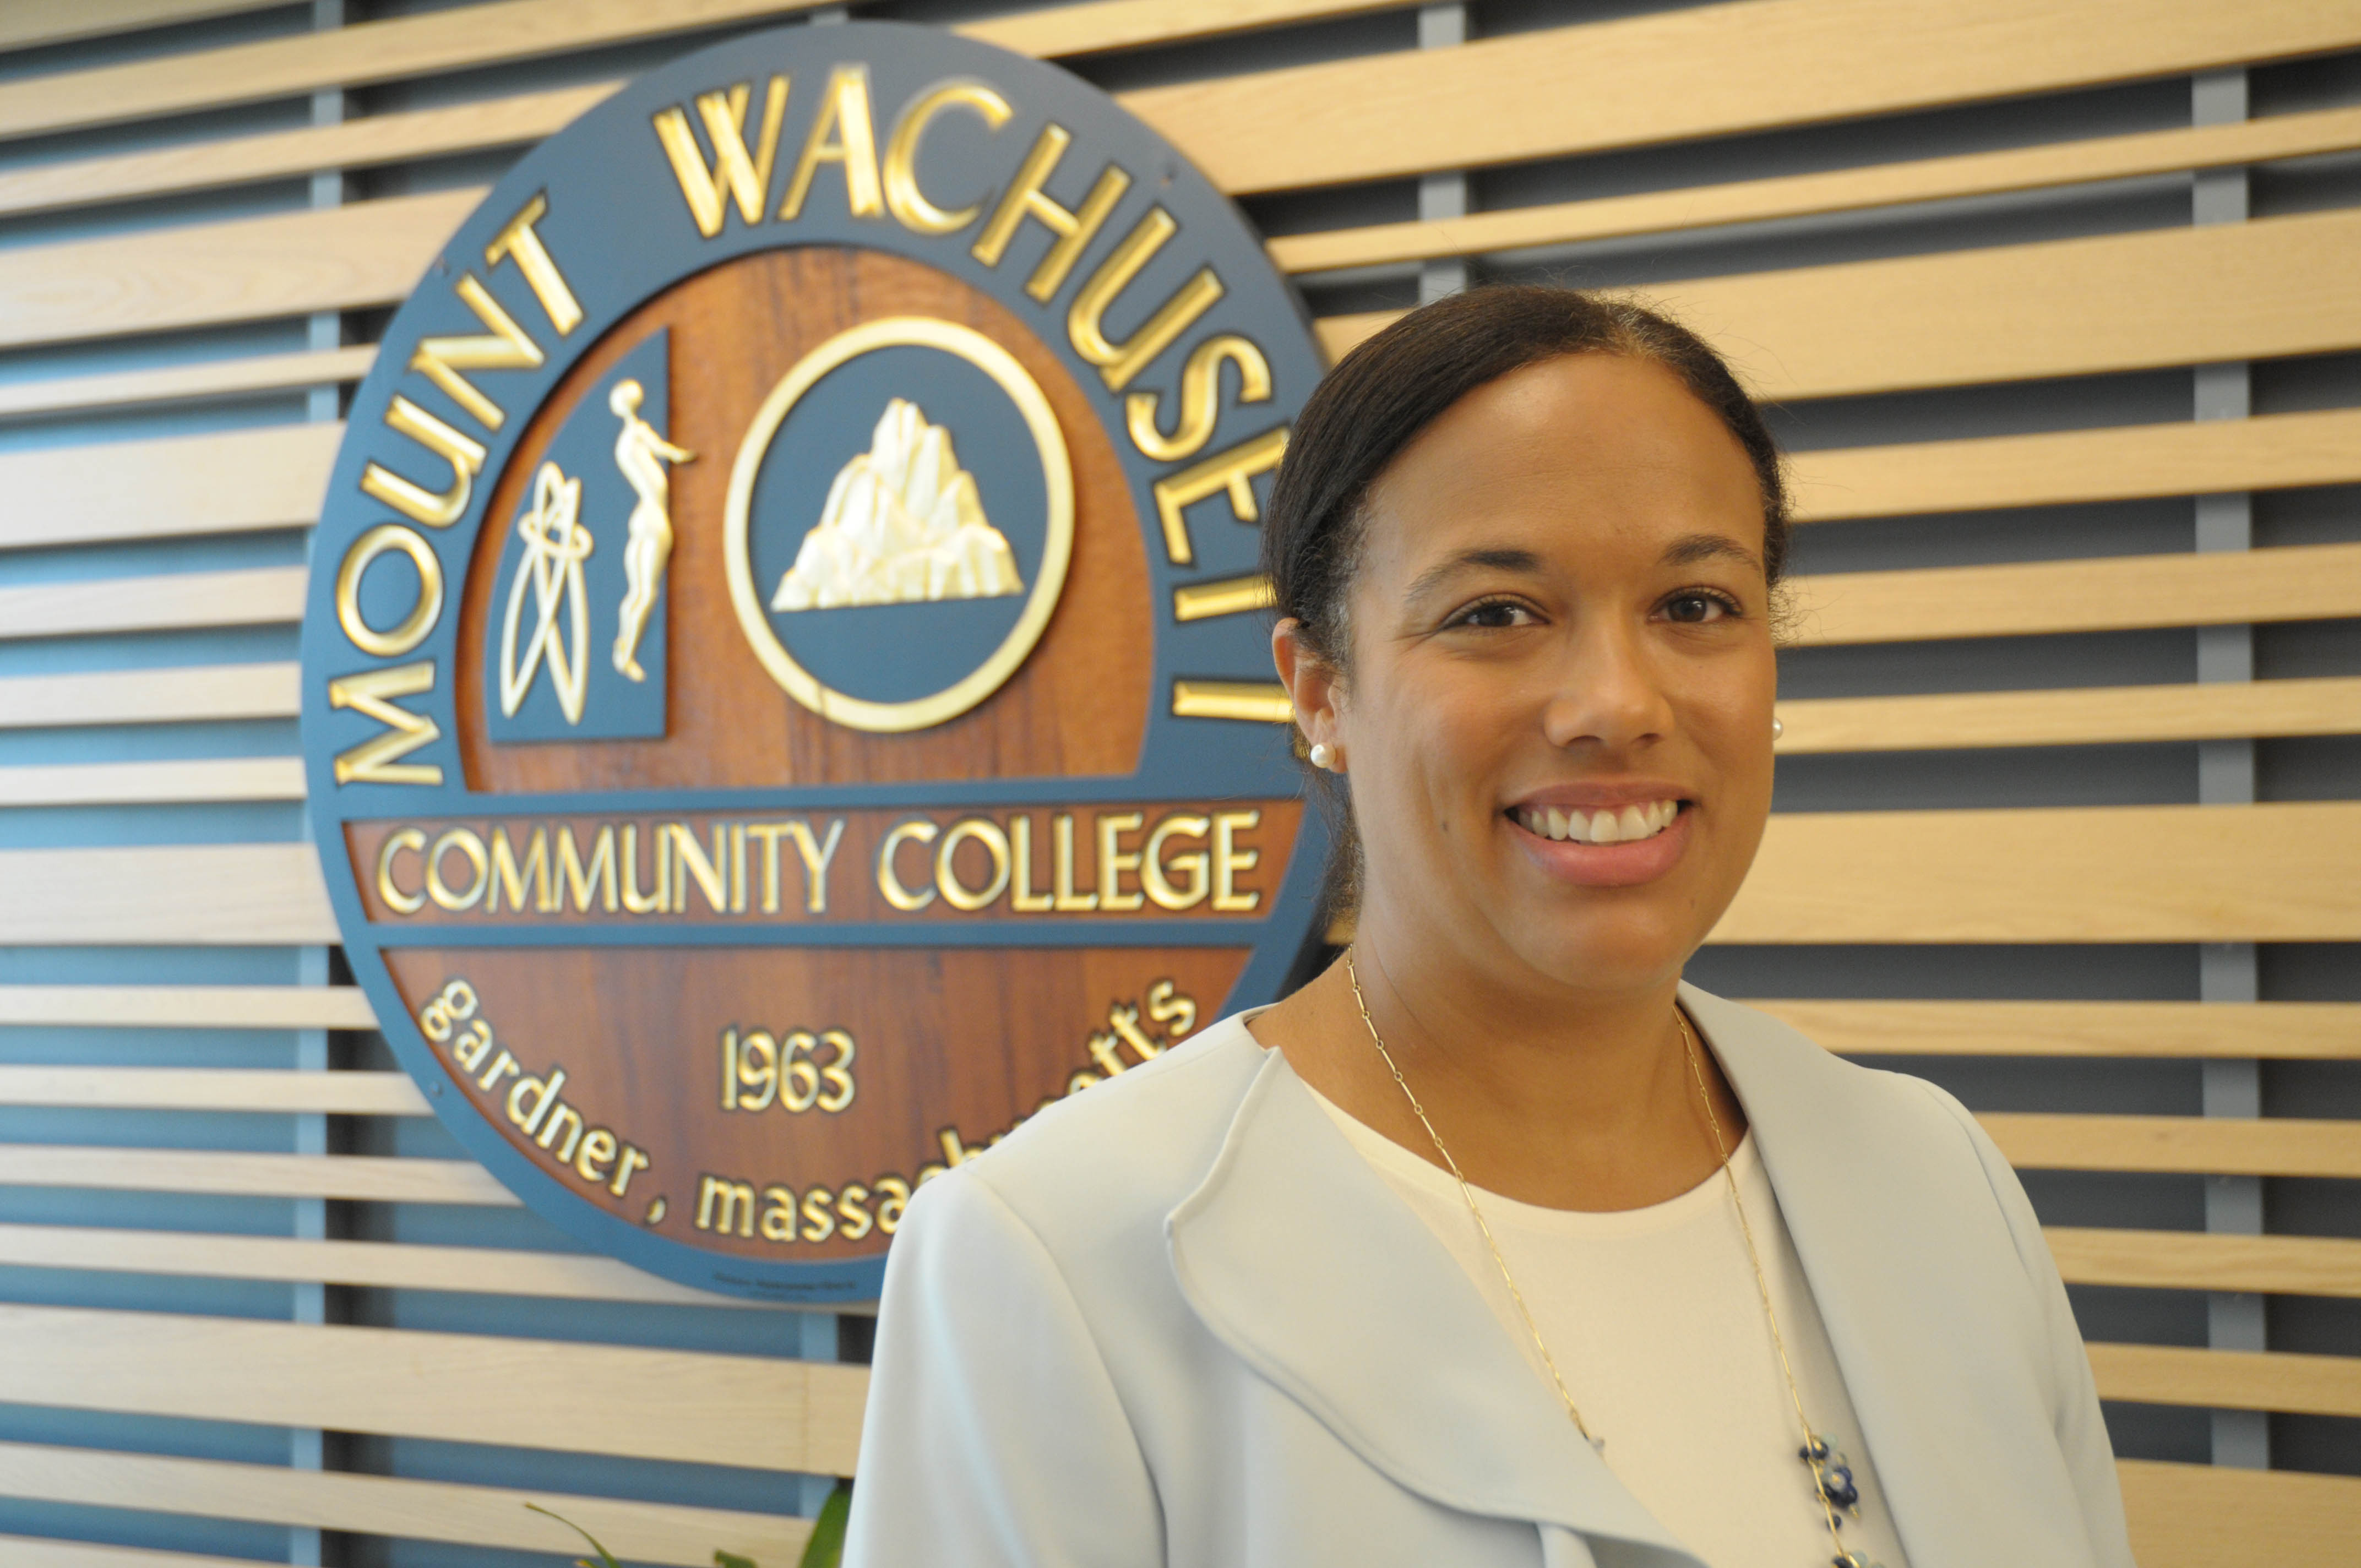 Jamy Gaynor poses in front of the MWCC seal.